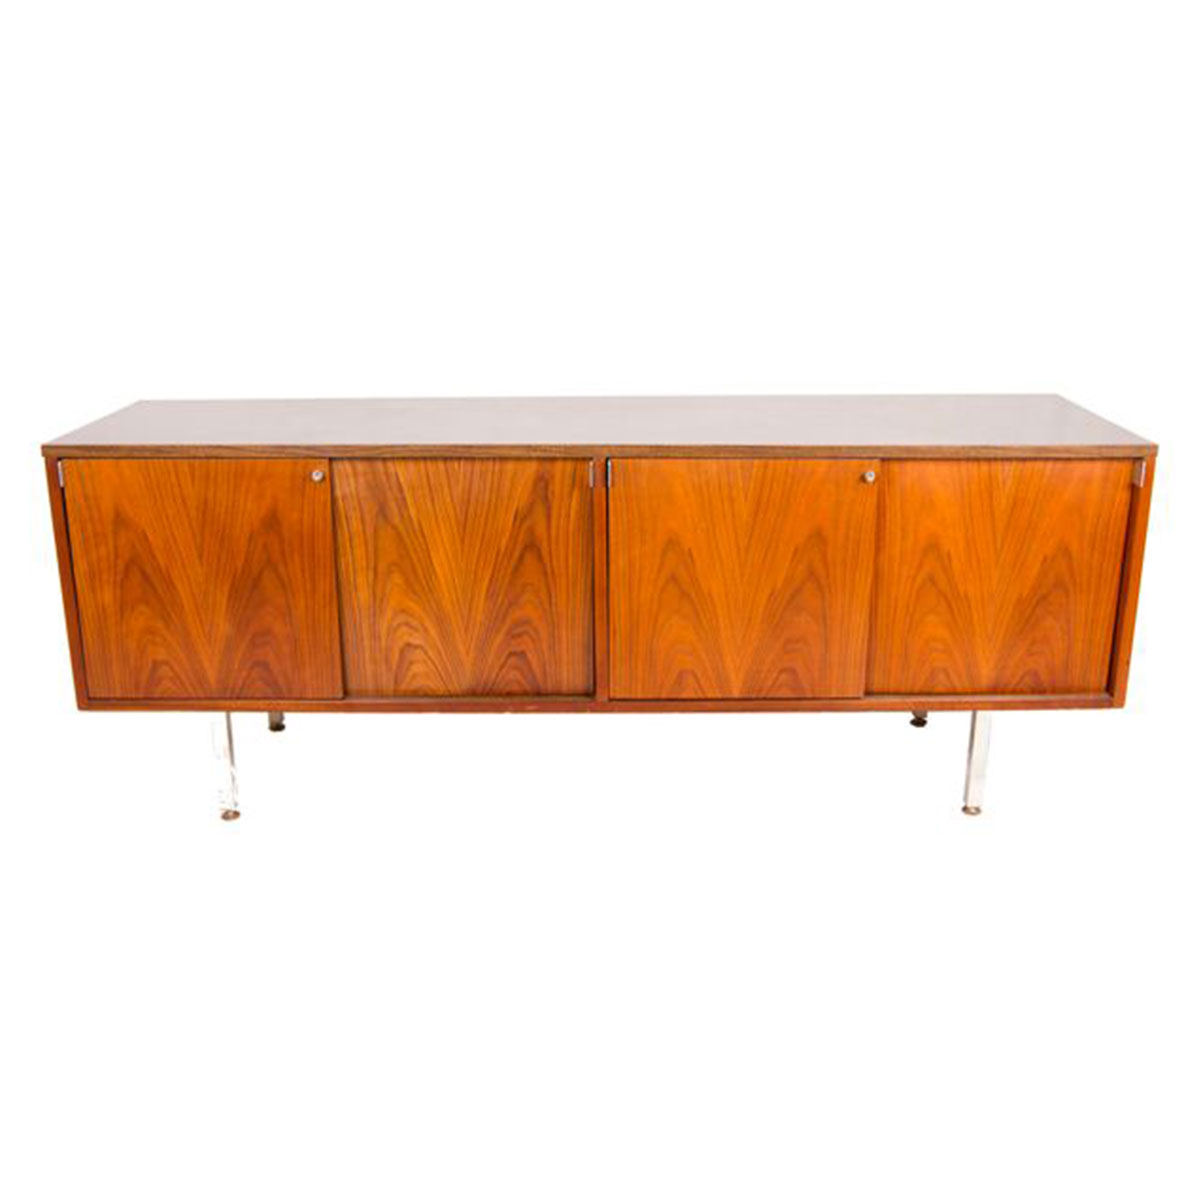 By Thonet, NY — Florence Knoll Style Low & Sexy Media Cabinet / Office Credenza / Sideboard